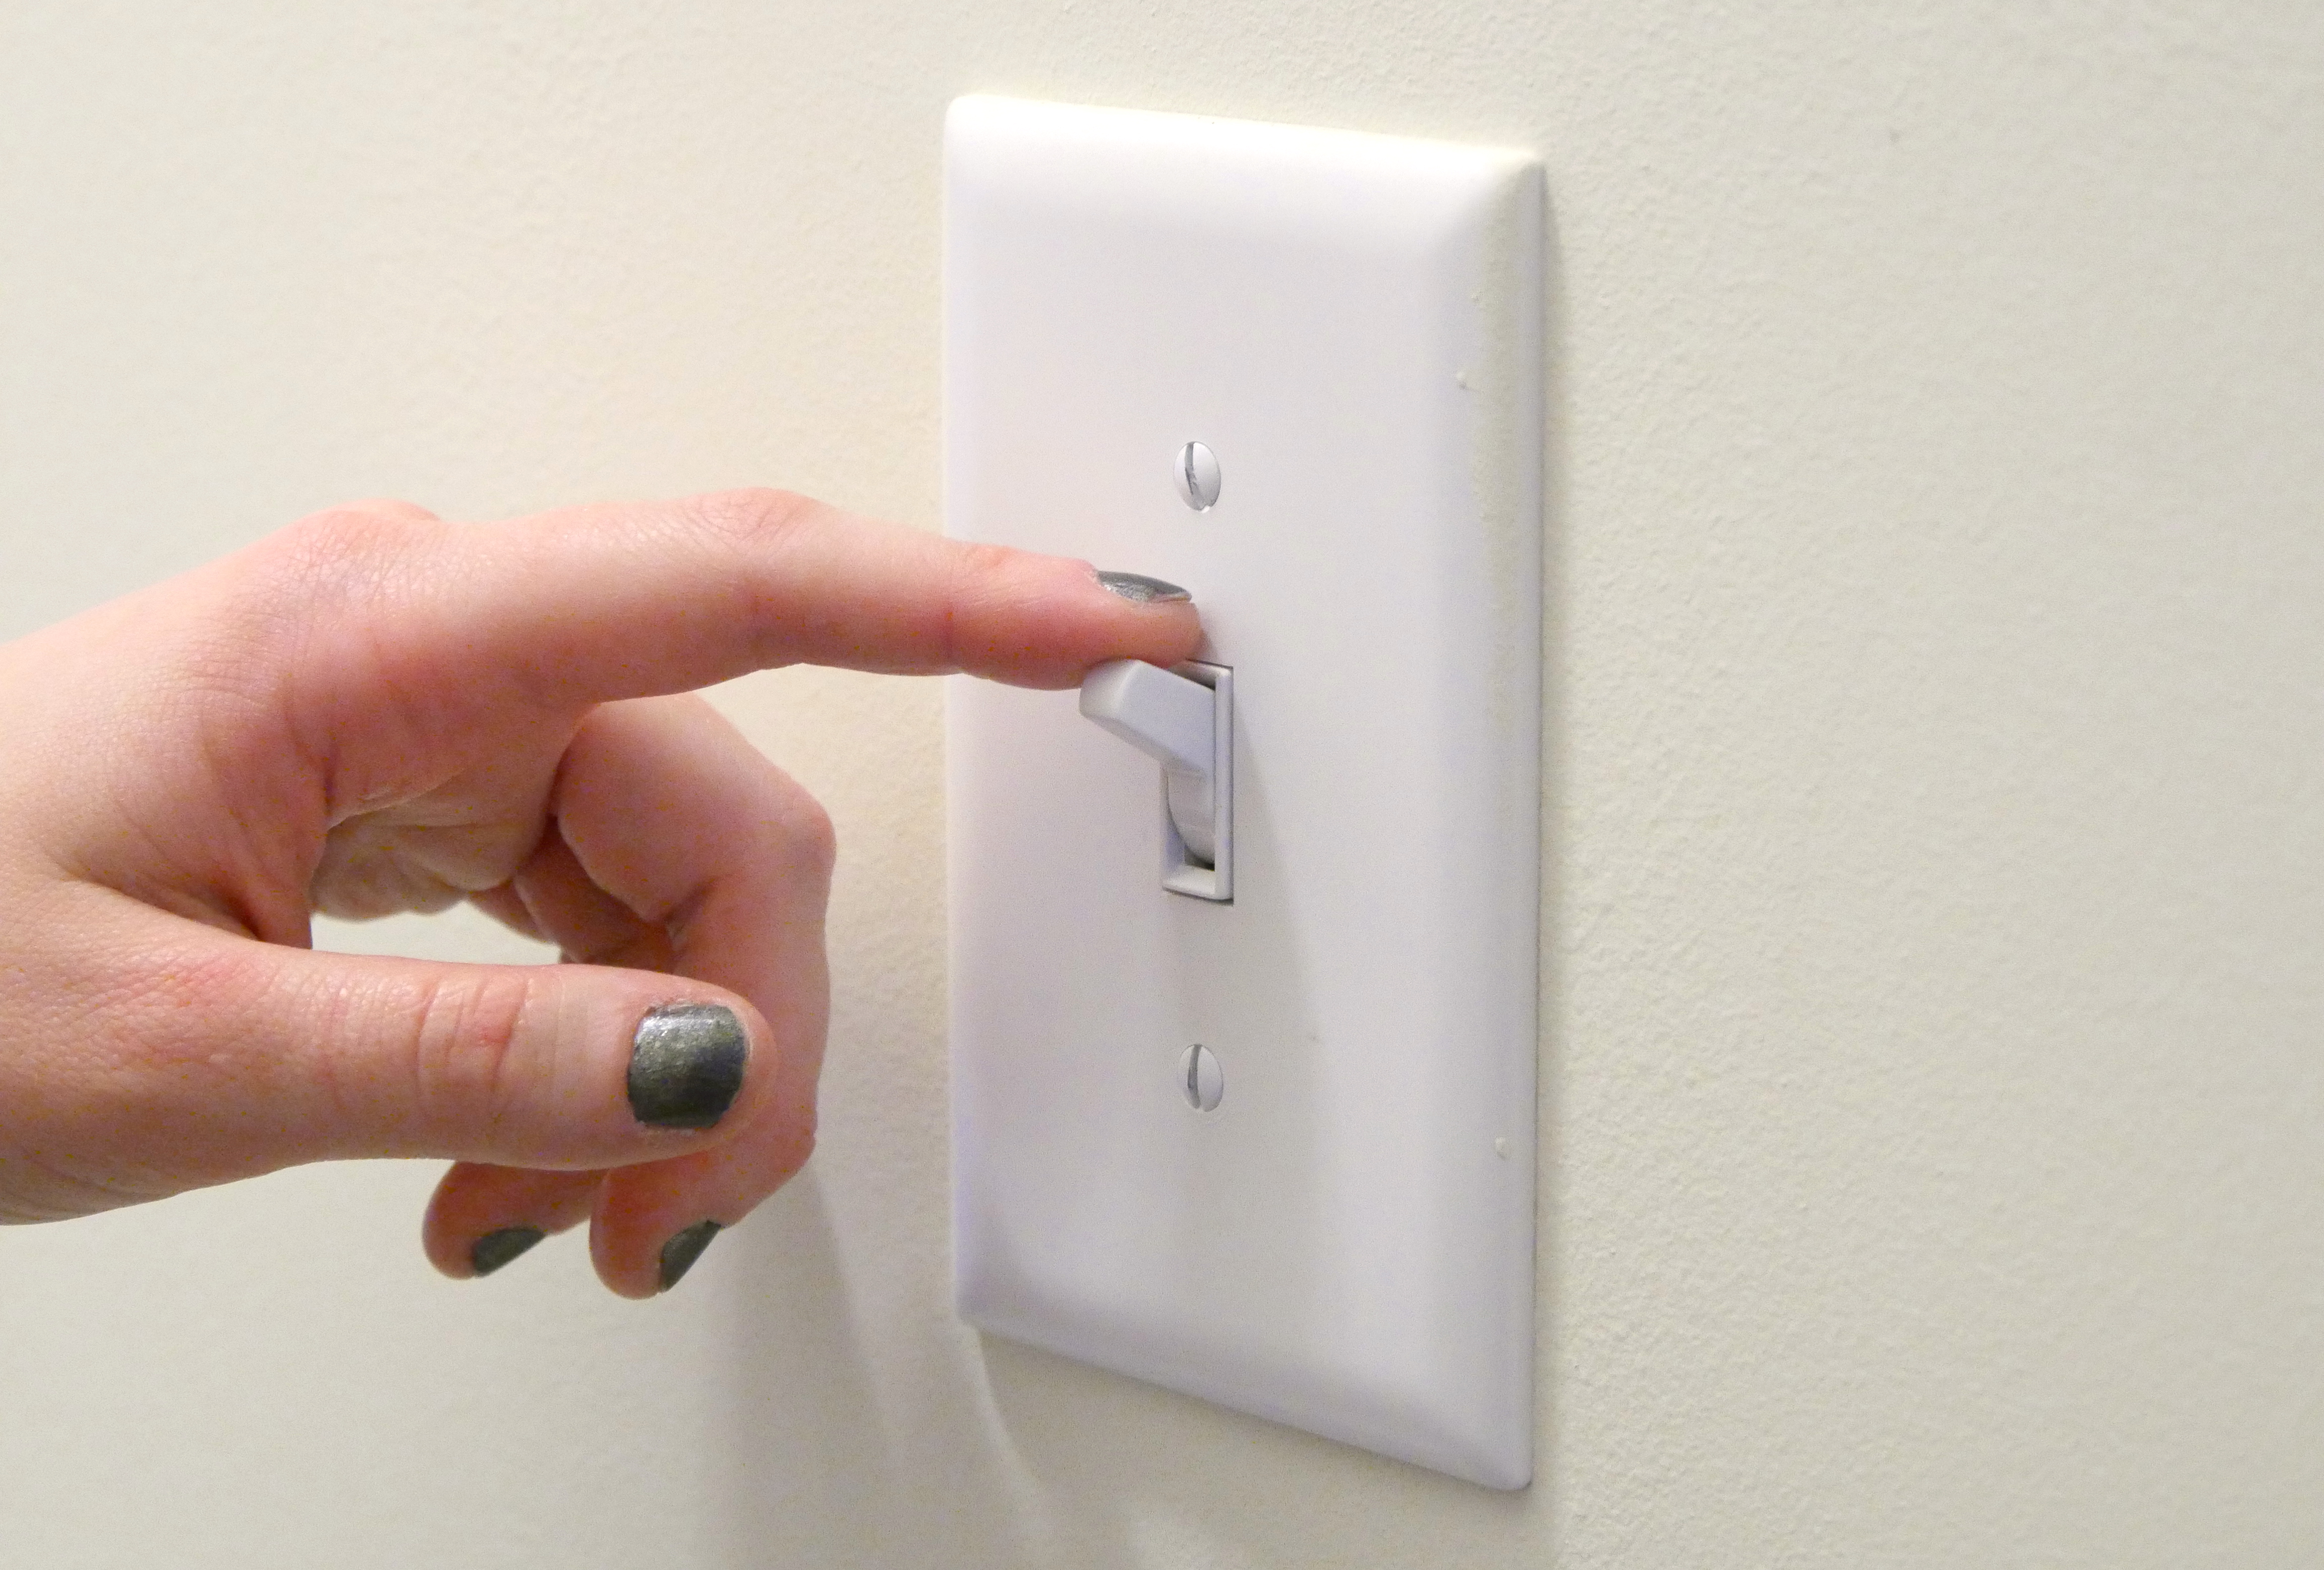 insulate light switches